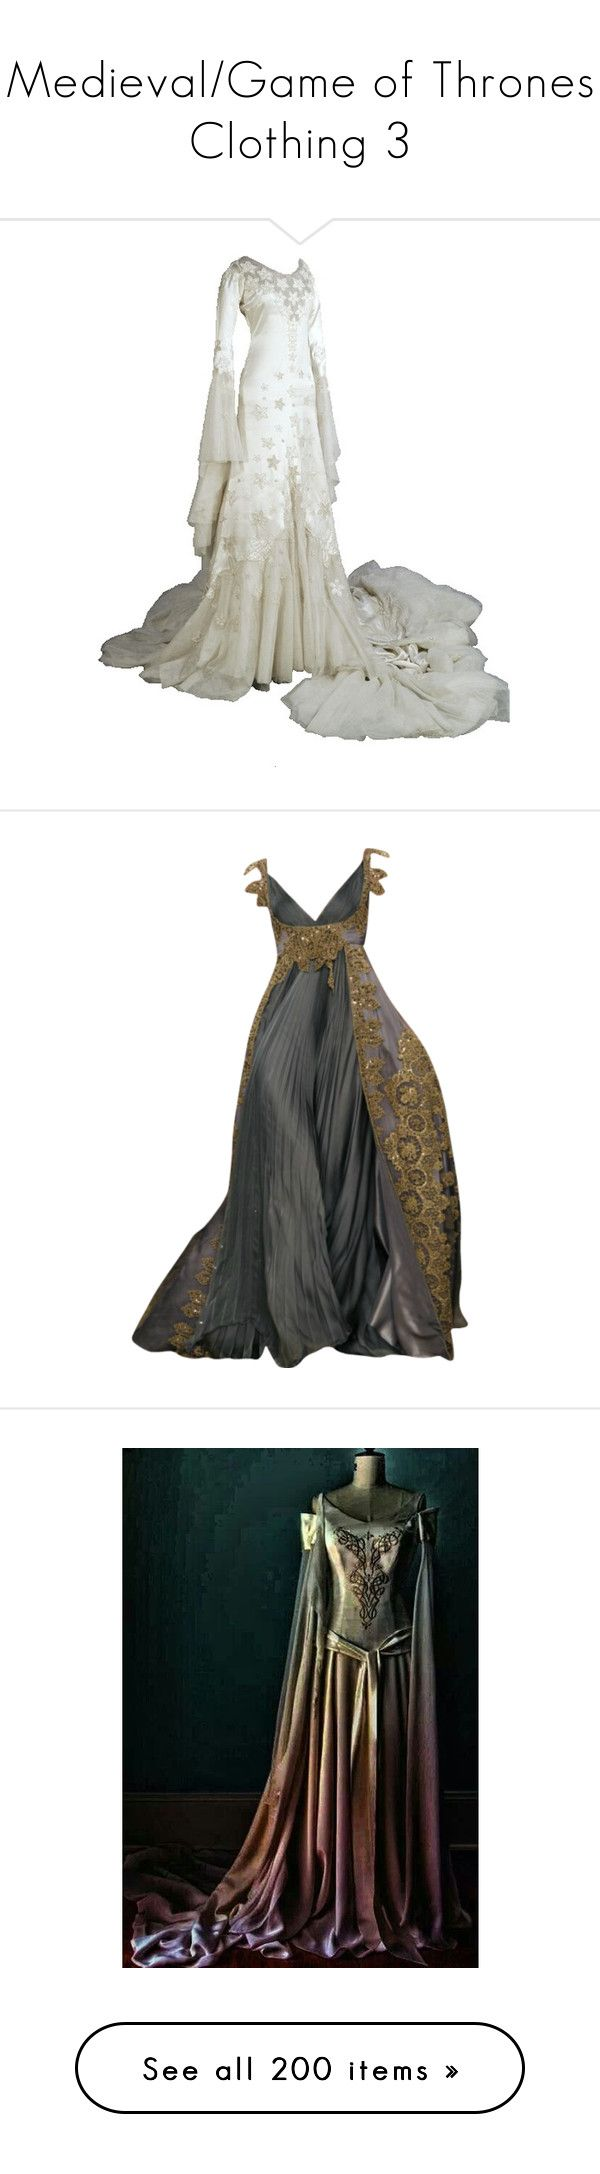 """Medieval/Game of Thrones Clothing 3"" by emma-frost-98 ❤ liked on Polyvore featuring dresses, gowns, costumes, medieval, vestidos, long dresses, zuhair murad dresses, zuhair murad, zuhair murad evening gowns and zuhair murad gowns"